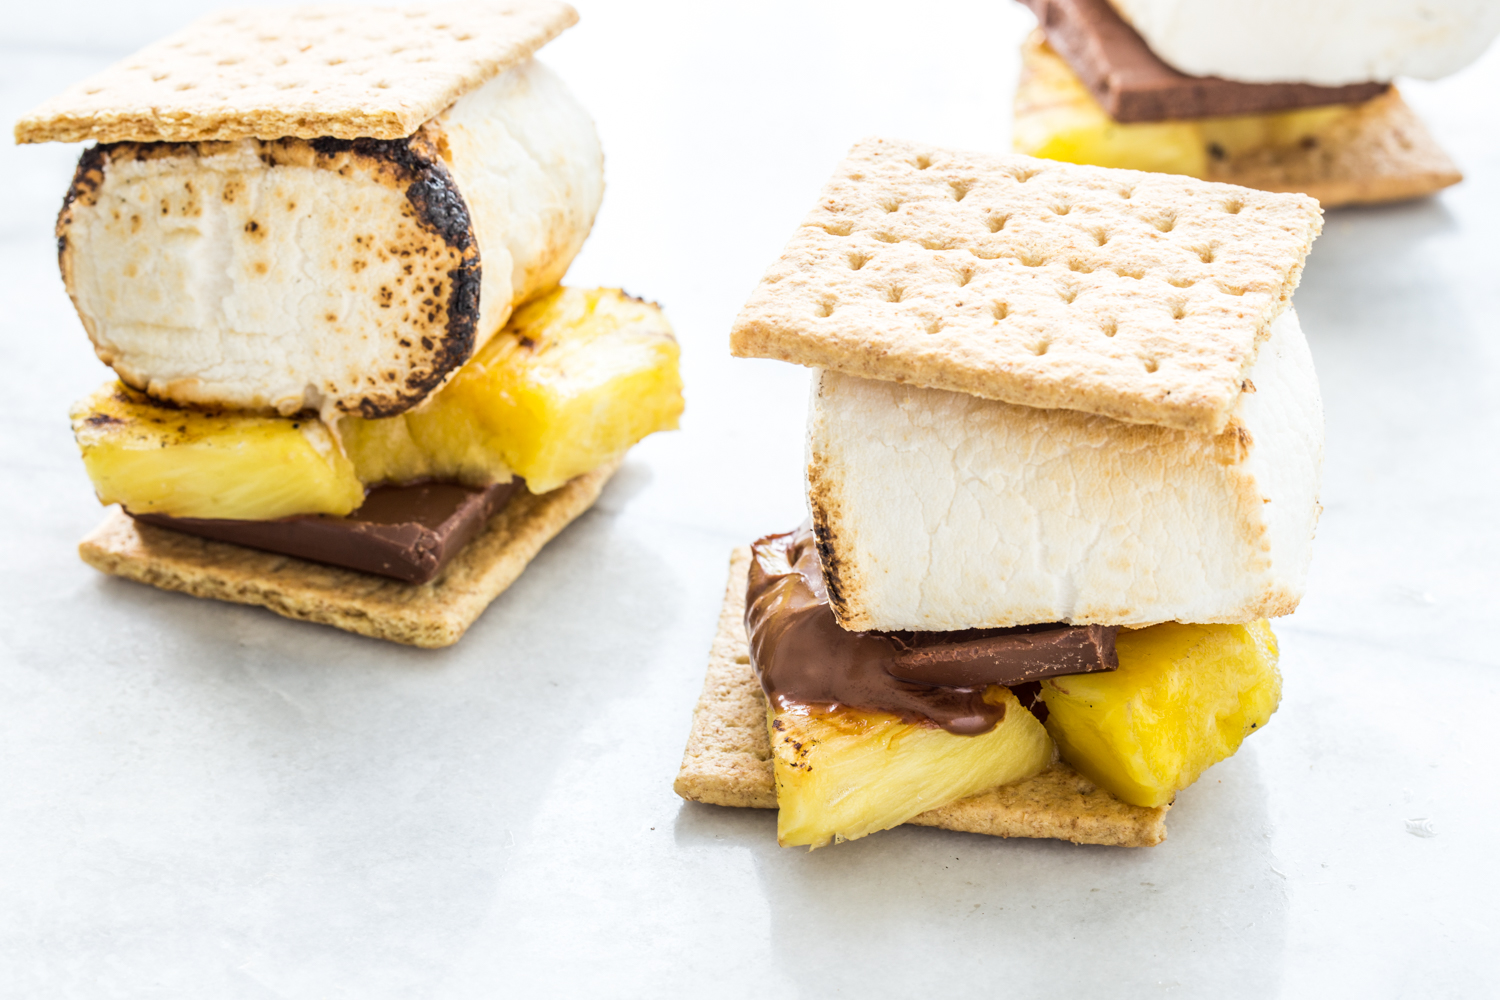 Grilled Pineapple S'mores with sweet grilled pineapple and Campfire® Giant Roaster Marshmallows